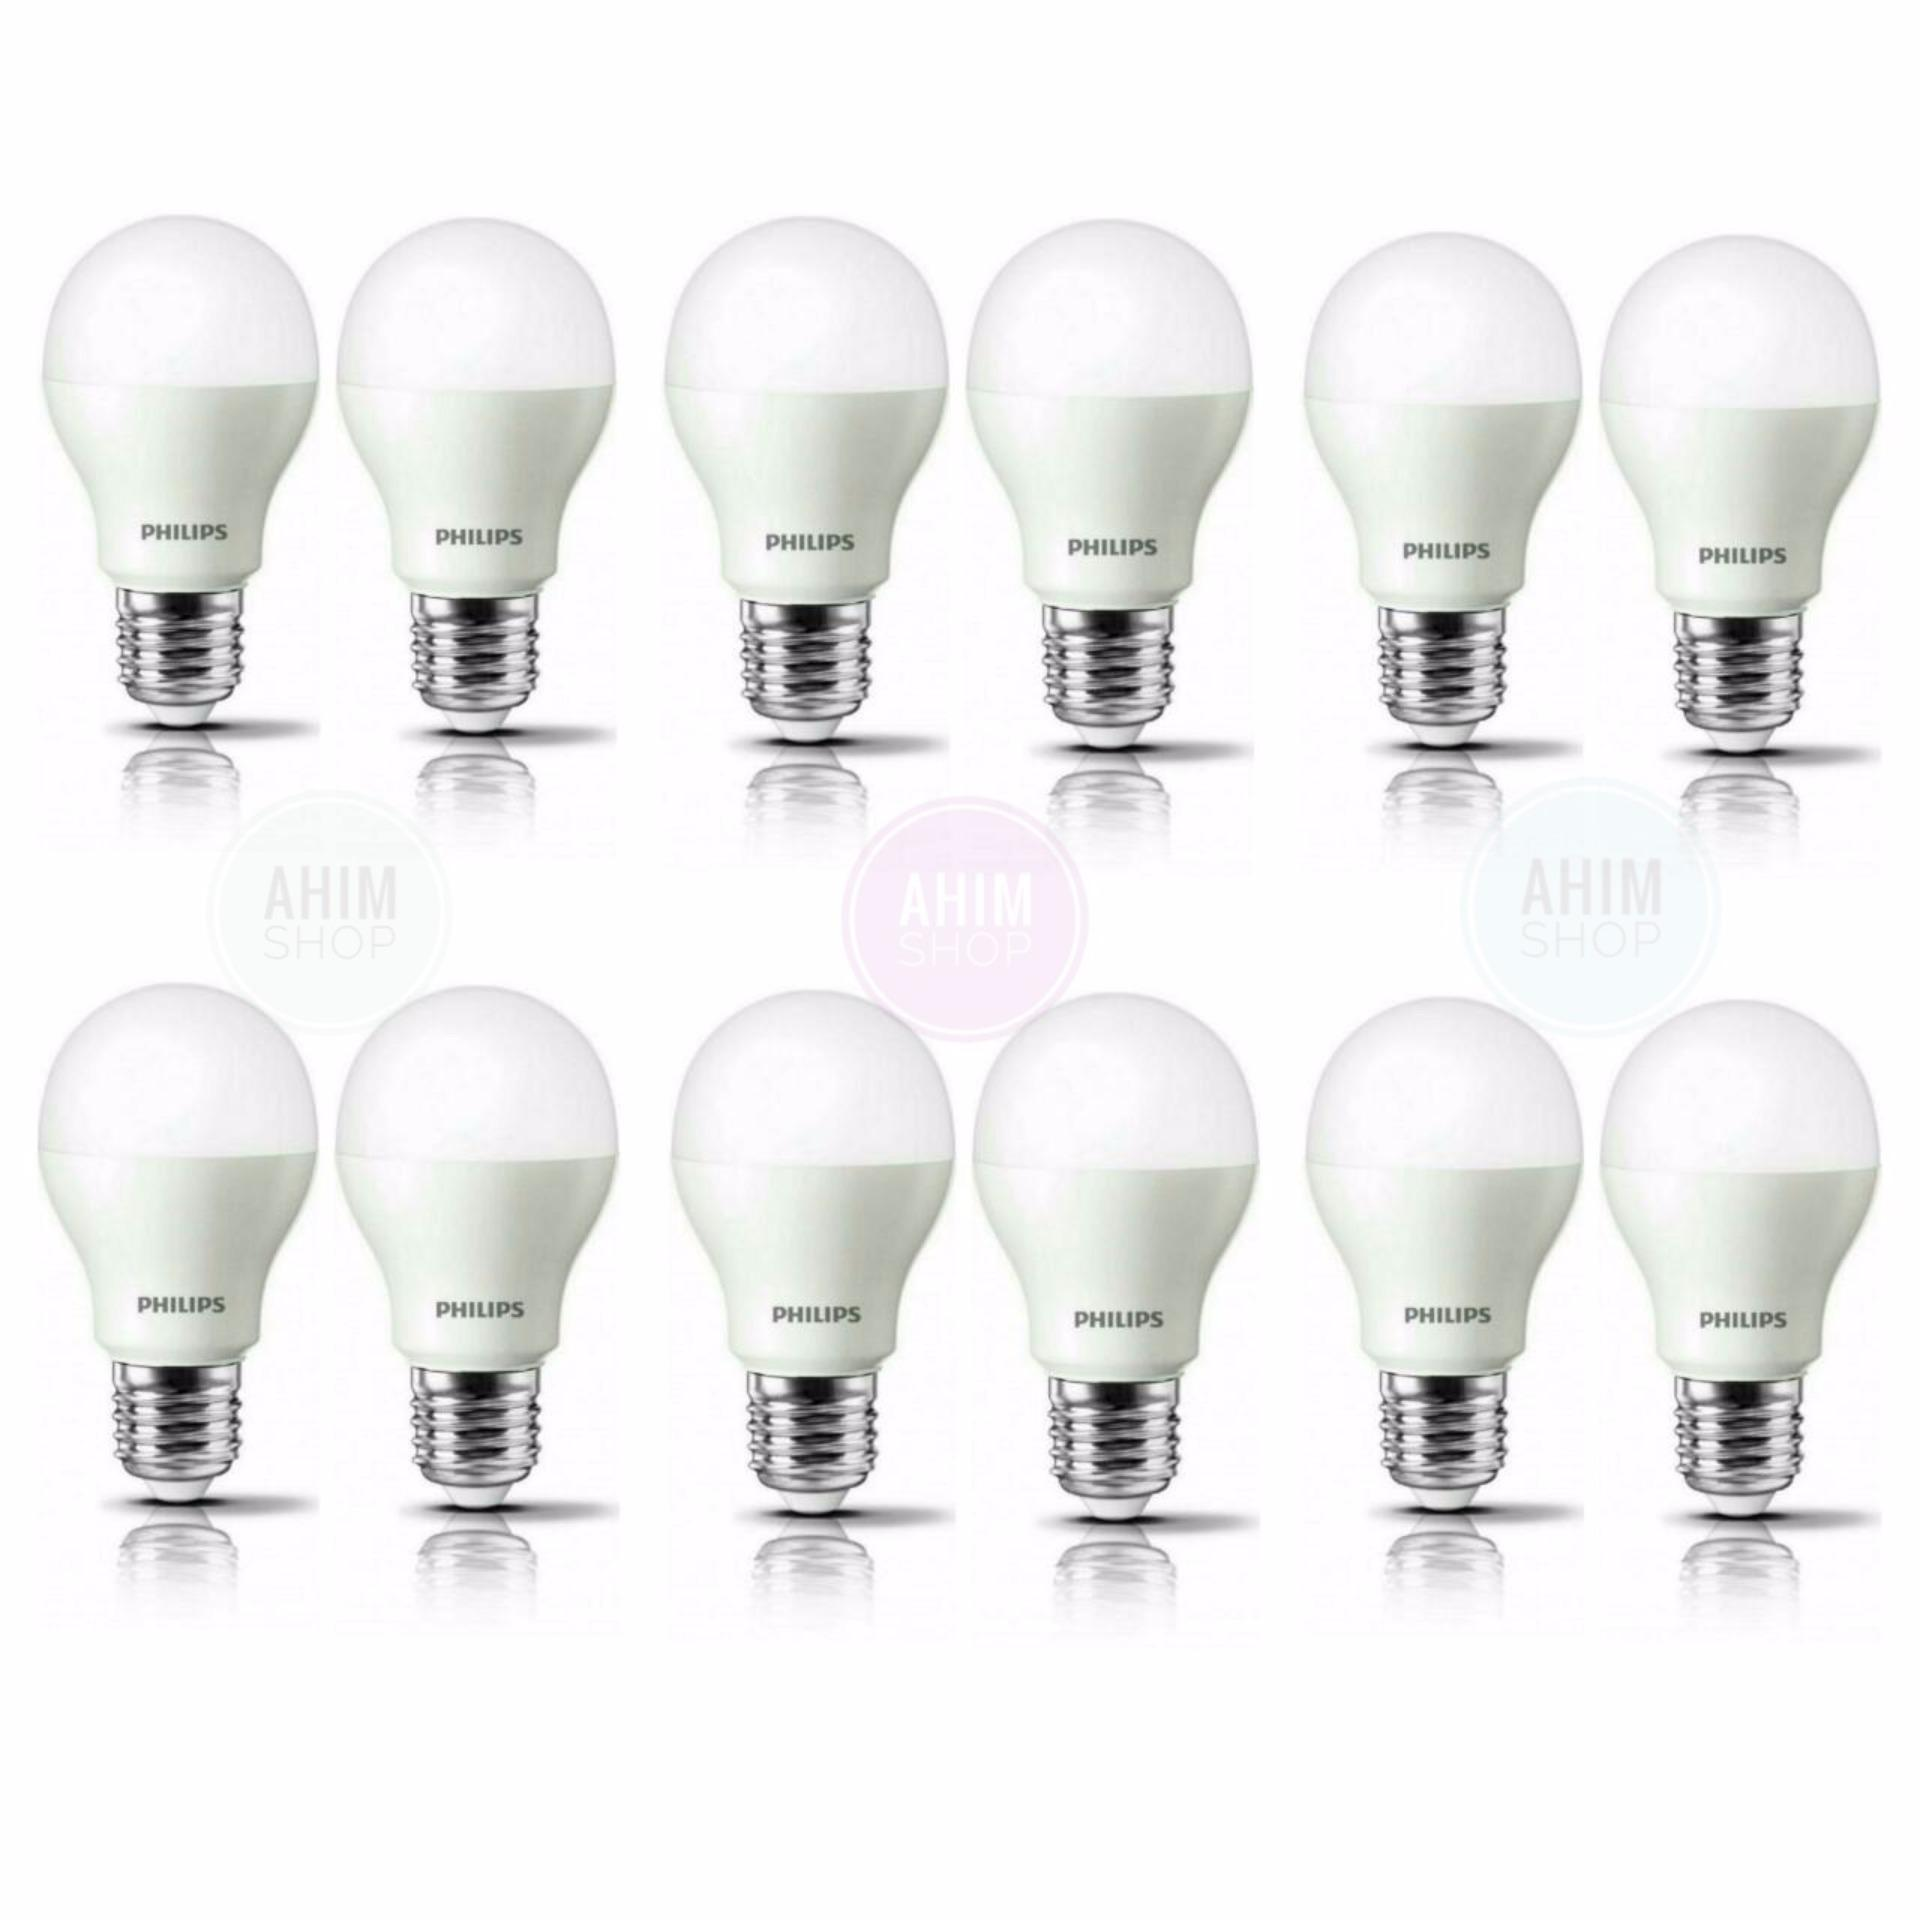 Philips Led Bulb 10 5w A60 E27 1055 Lumen Cool Daylight 2pcs White Classic 7 70w G93 Ww Kuning 105w 12pcs